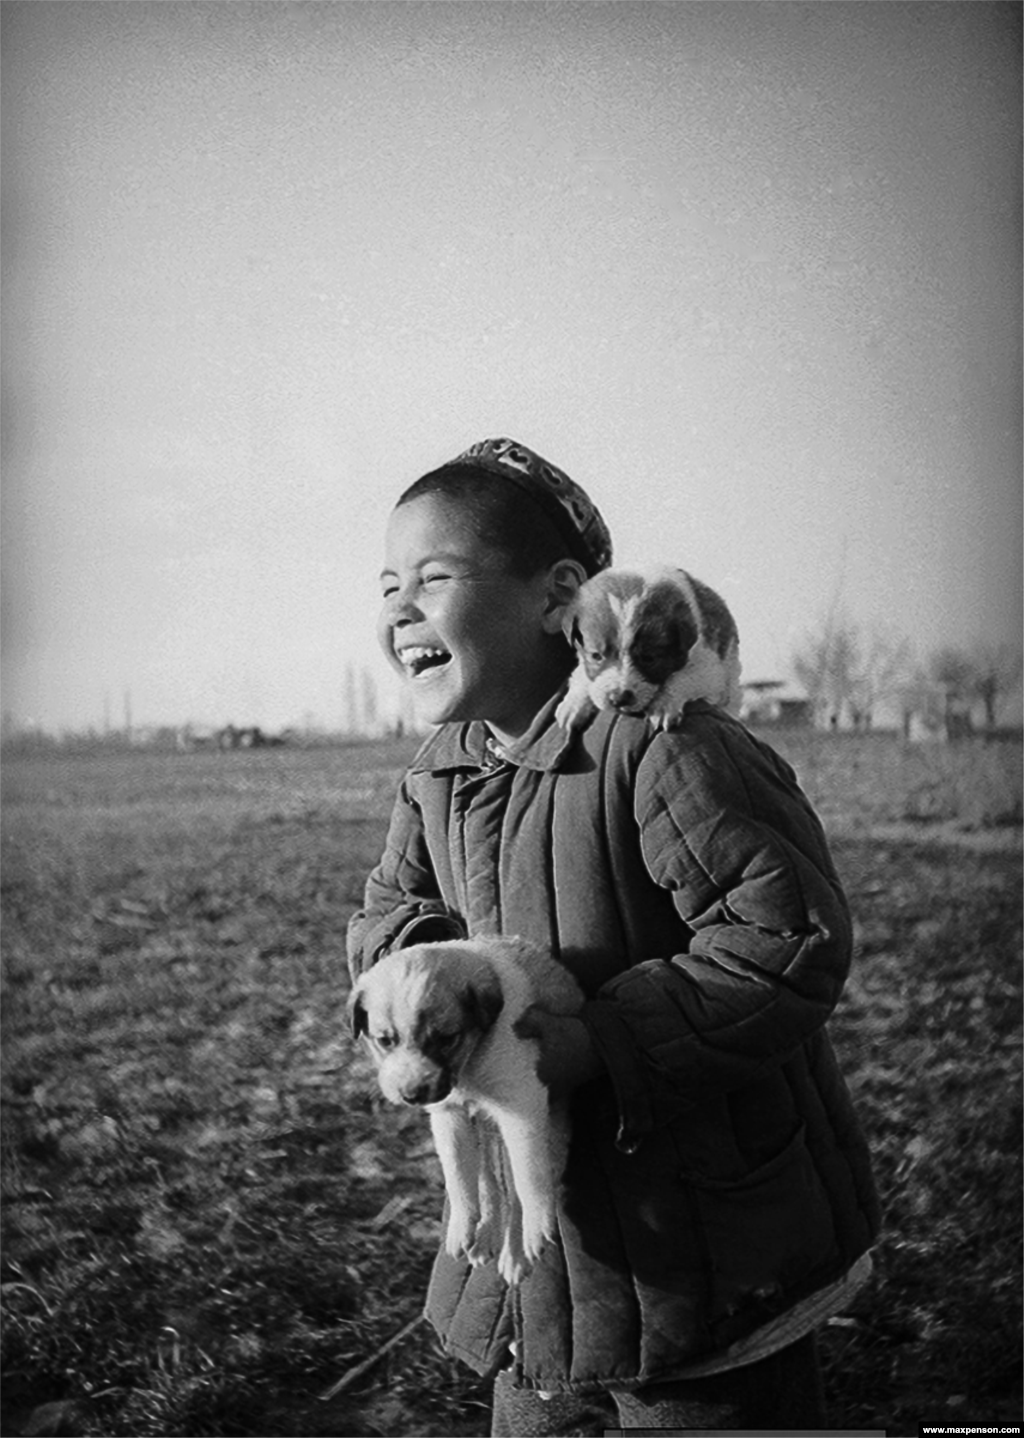 A boy with puppies on a collective farm.